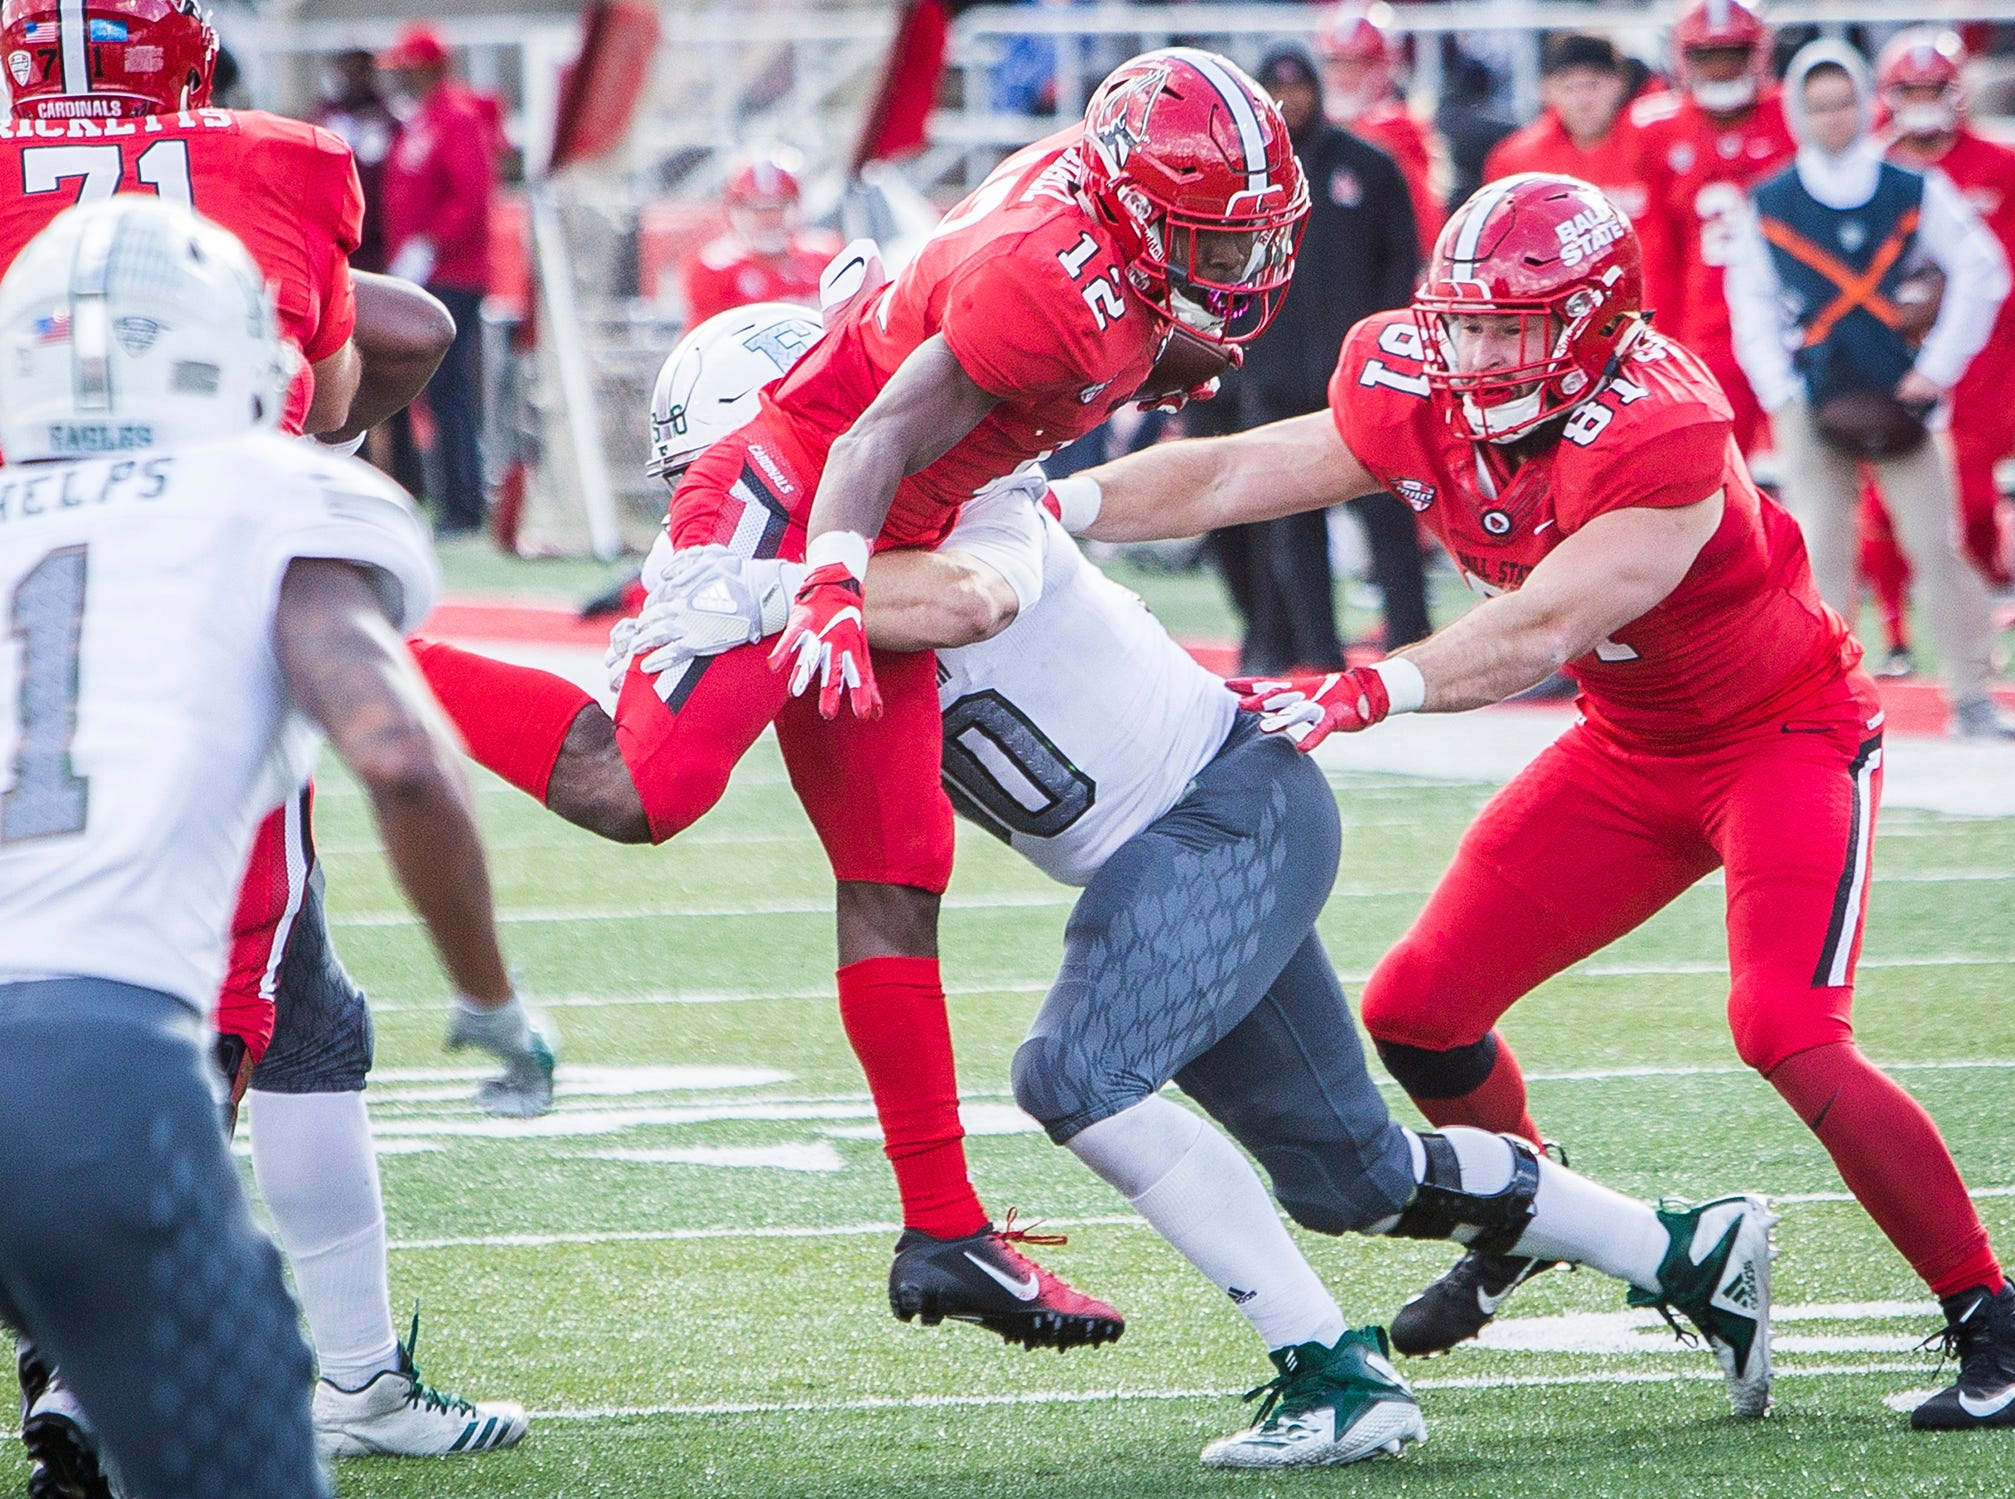 Ball State's Justin Hall struggles against Eastern Michigan's defense during their game at Scheumann Stadium Saturday, Oct. 20, 2018.